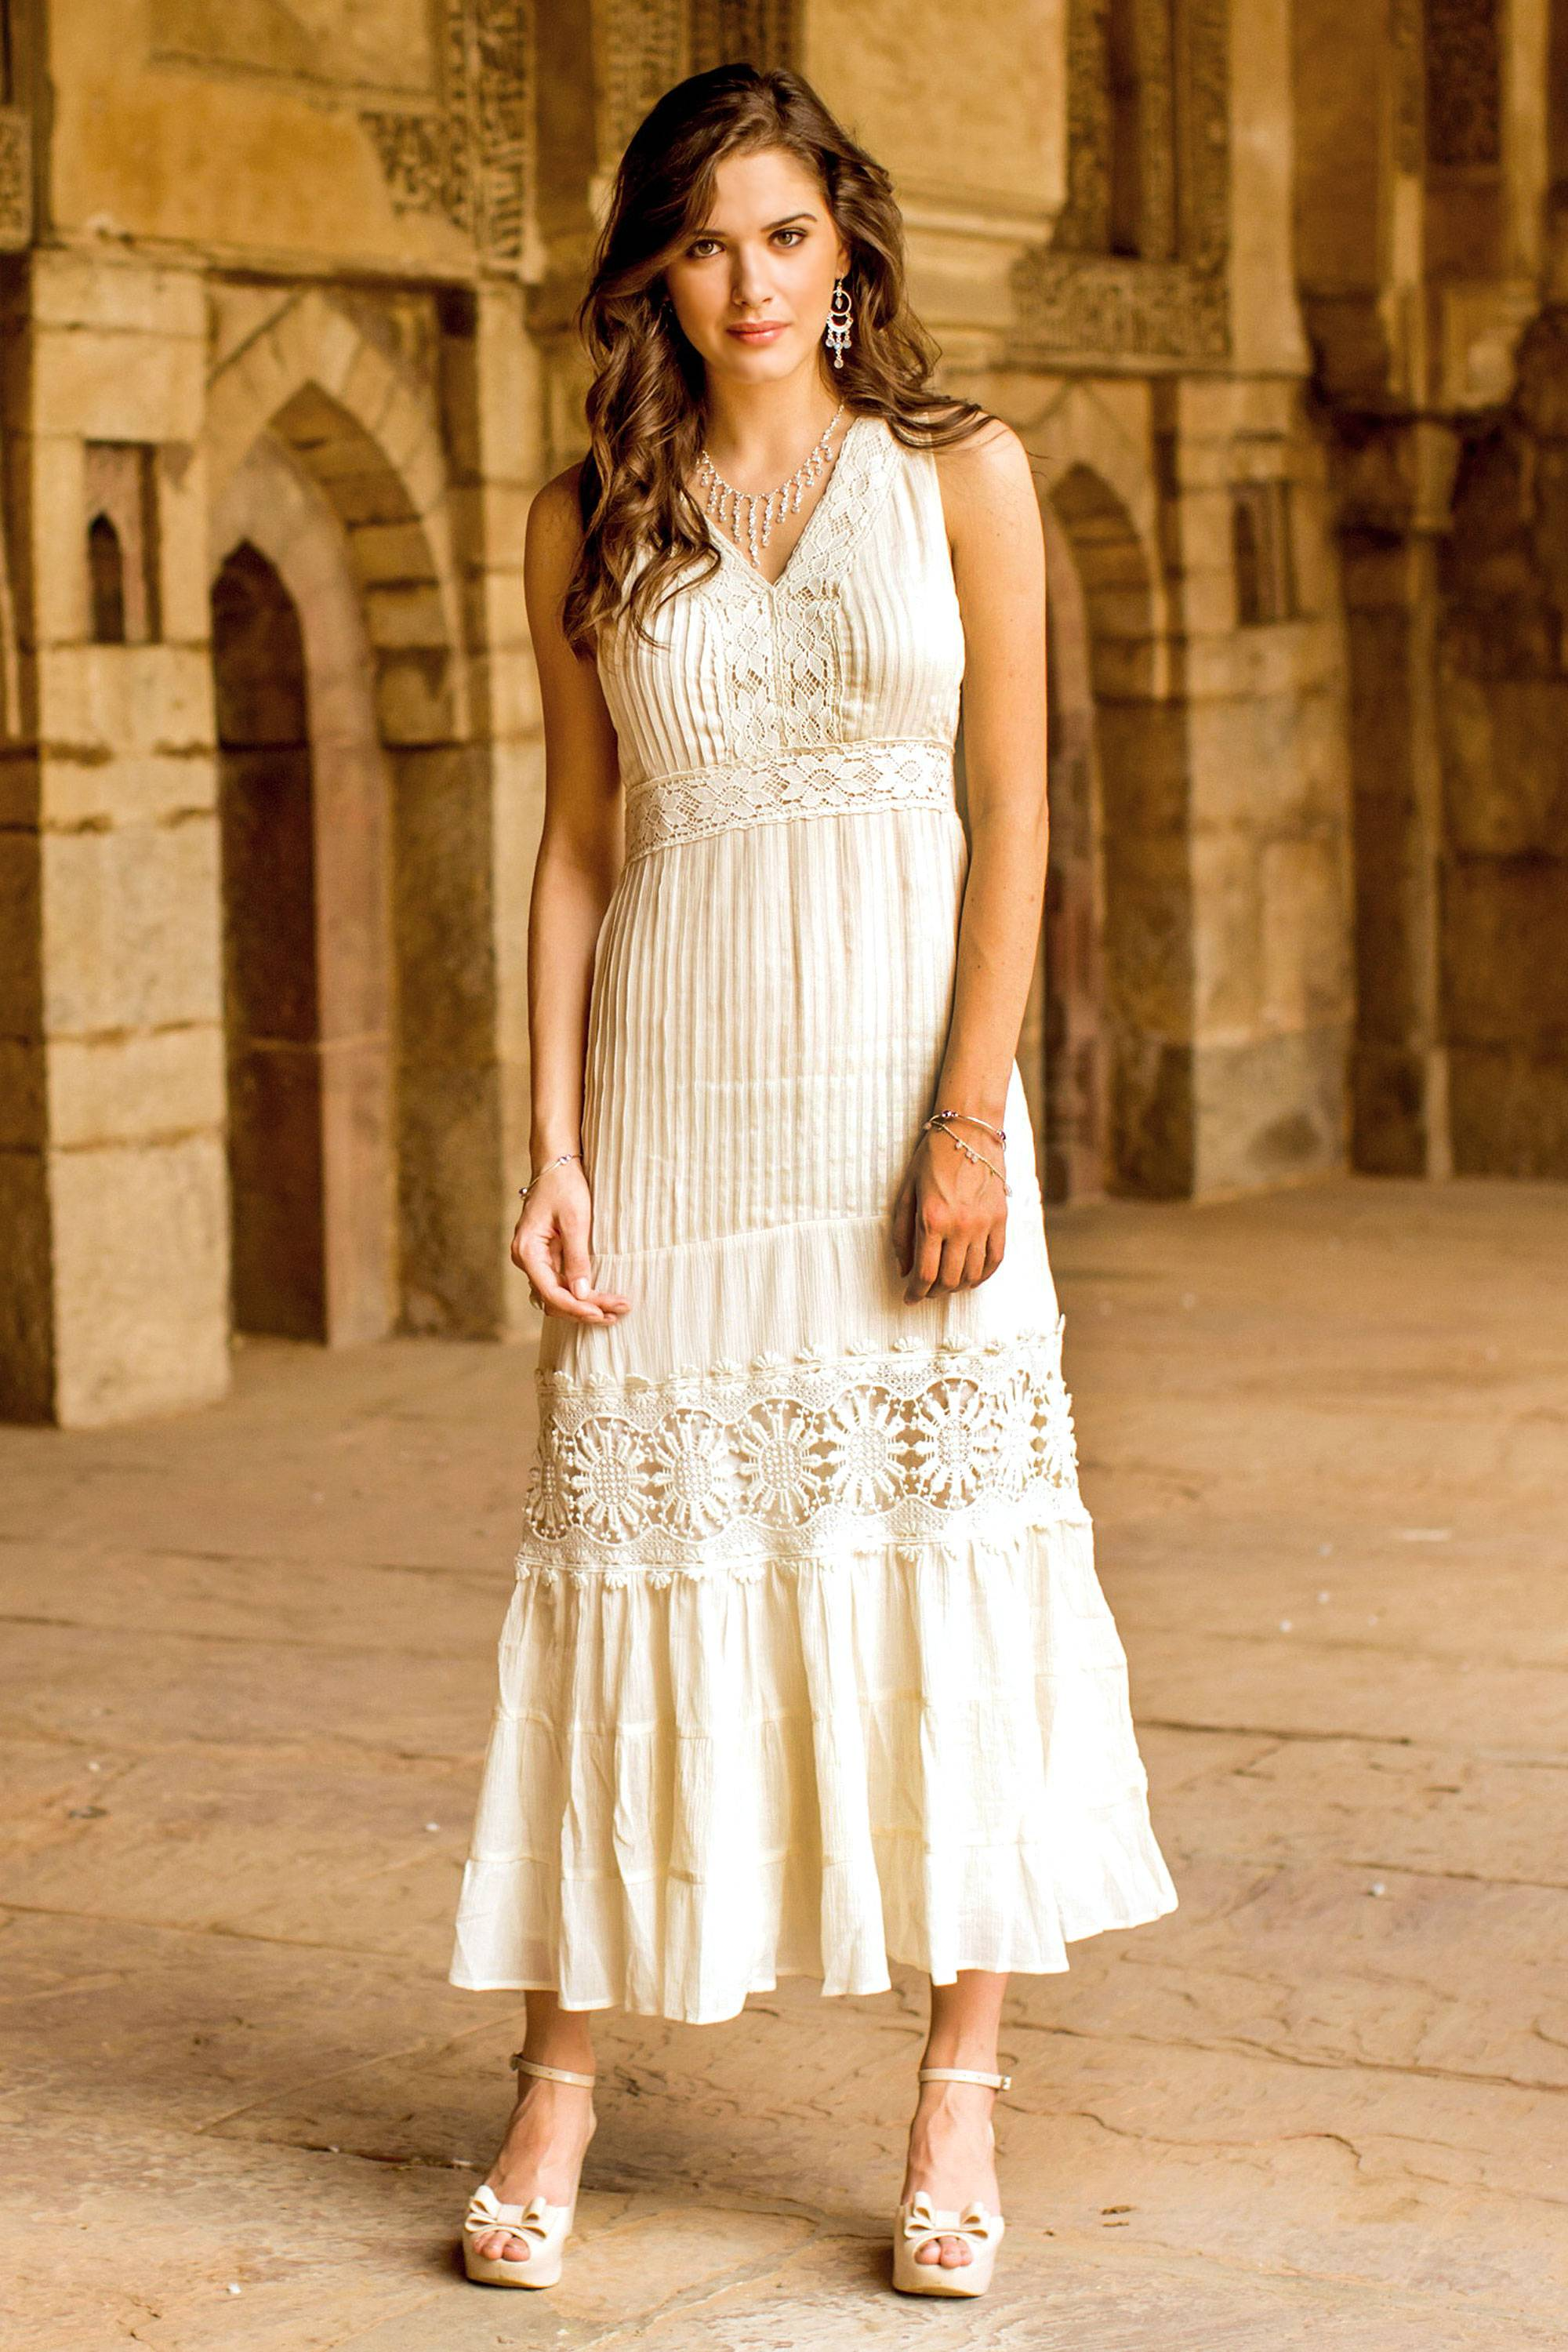 NOVICA Fair Trade Lace Trim Long Ecru Cotton Dress Flower Princess Fit and Flare, but can also be a Maxi dress!